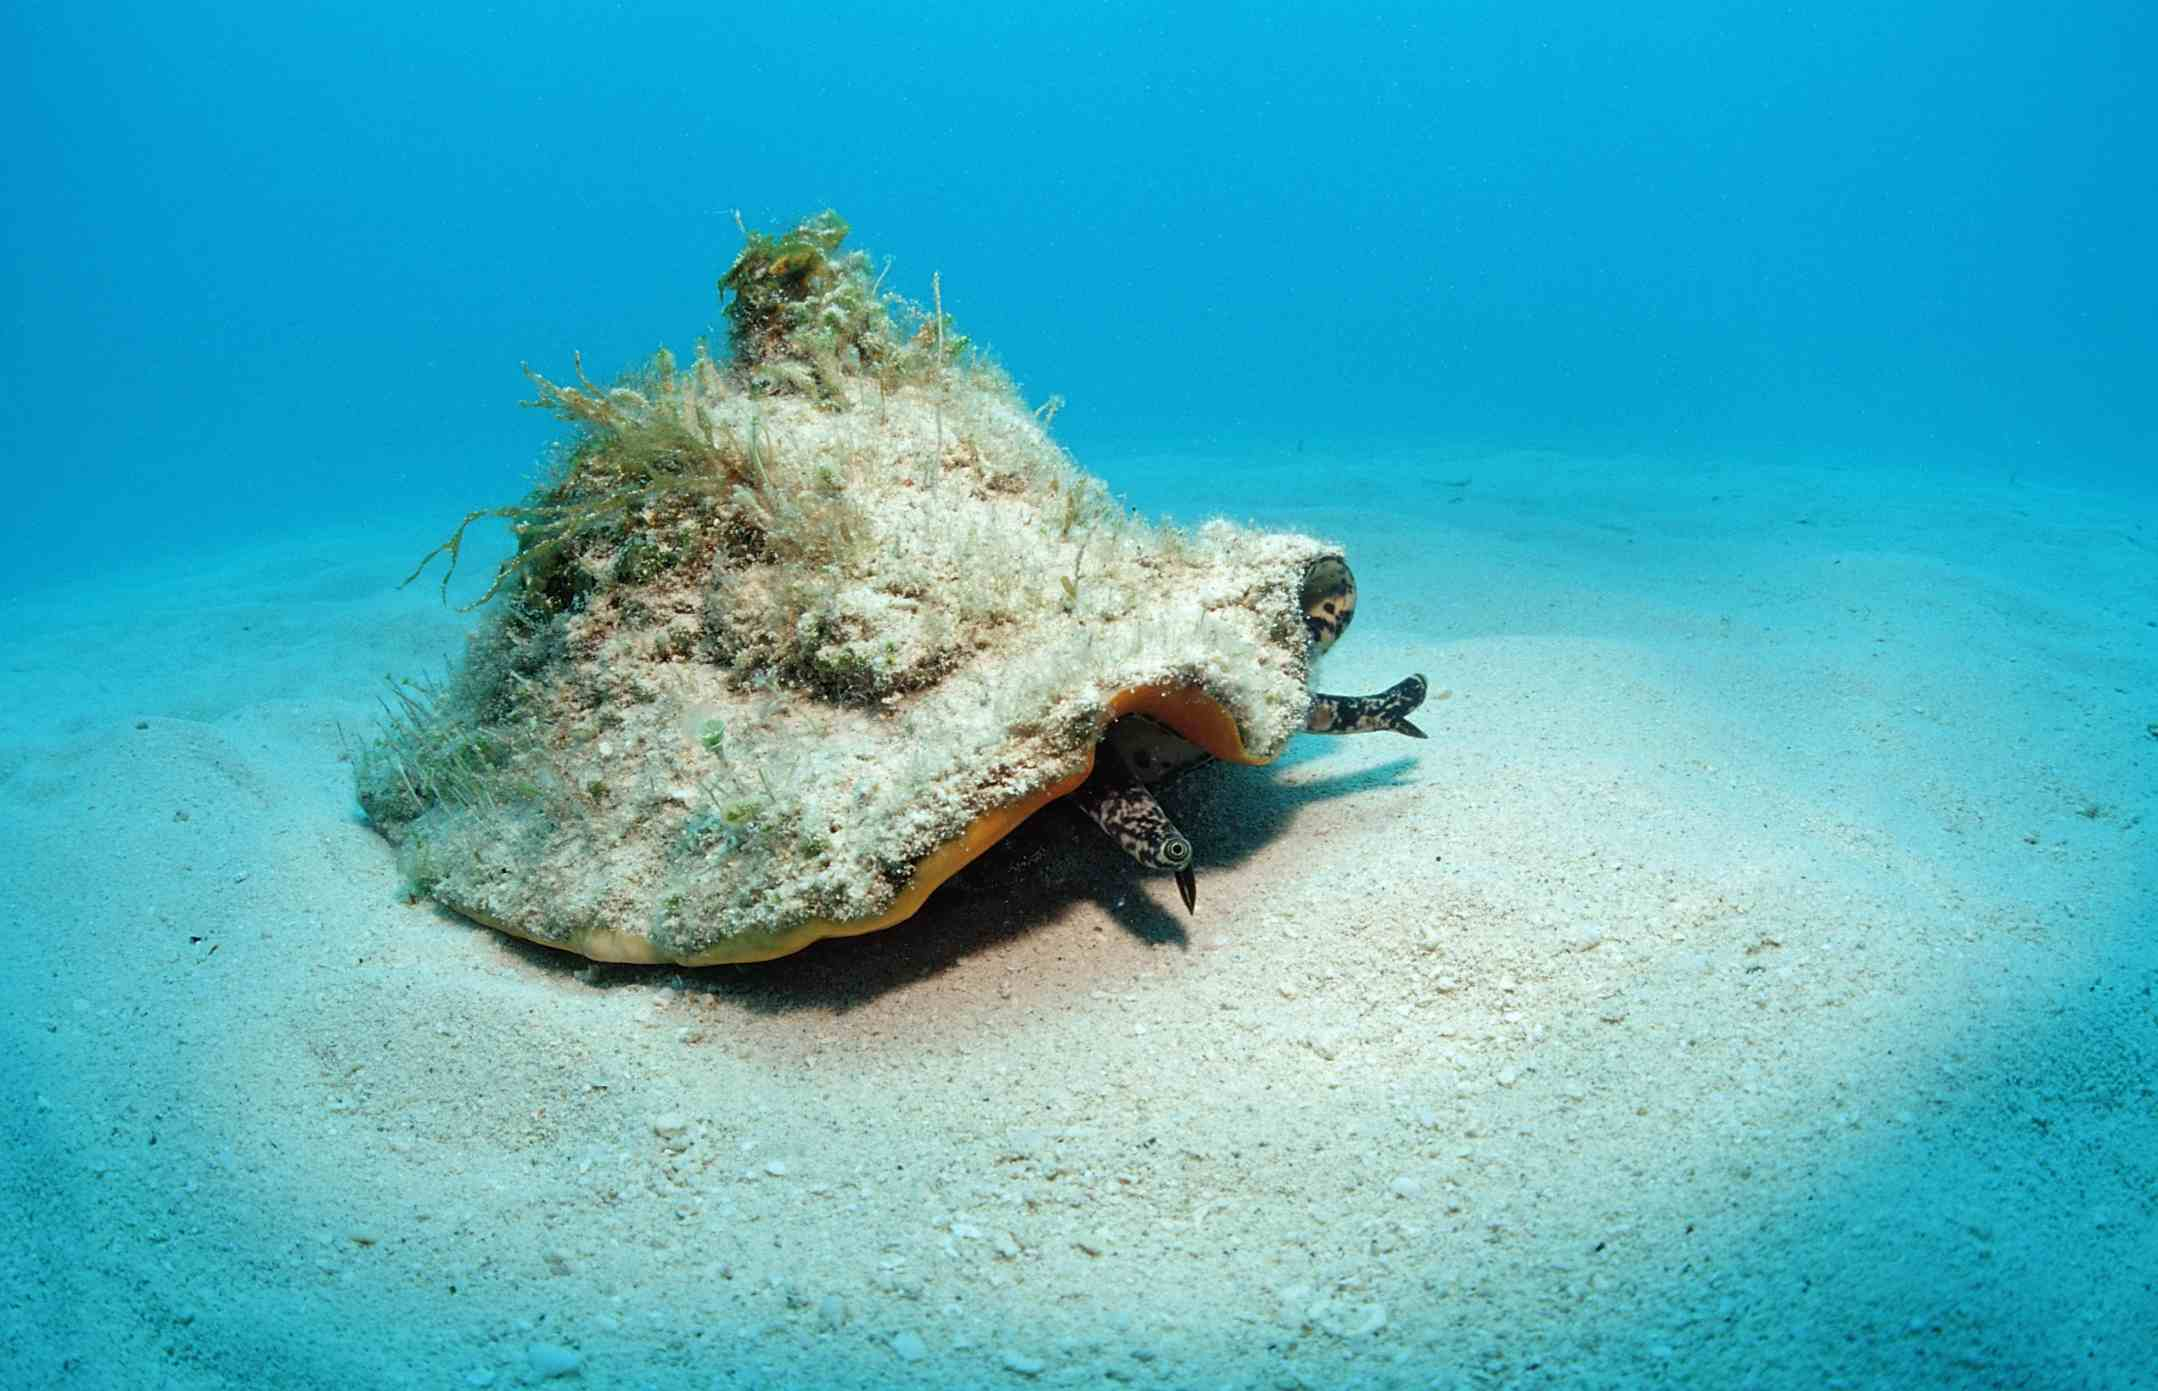 Conch Shell in the bahamas